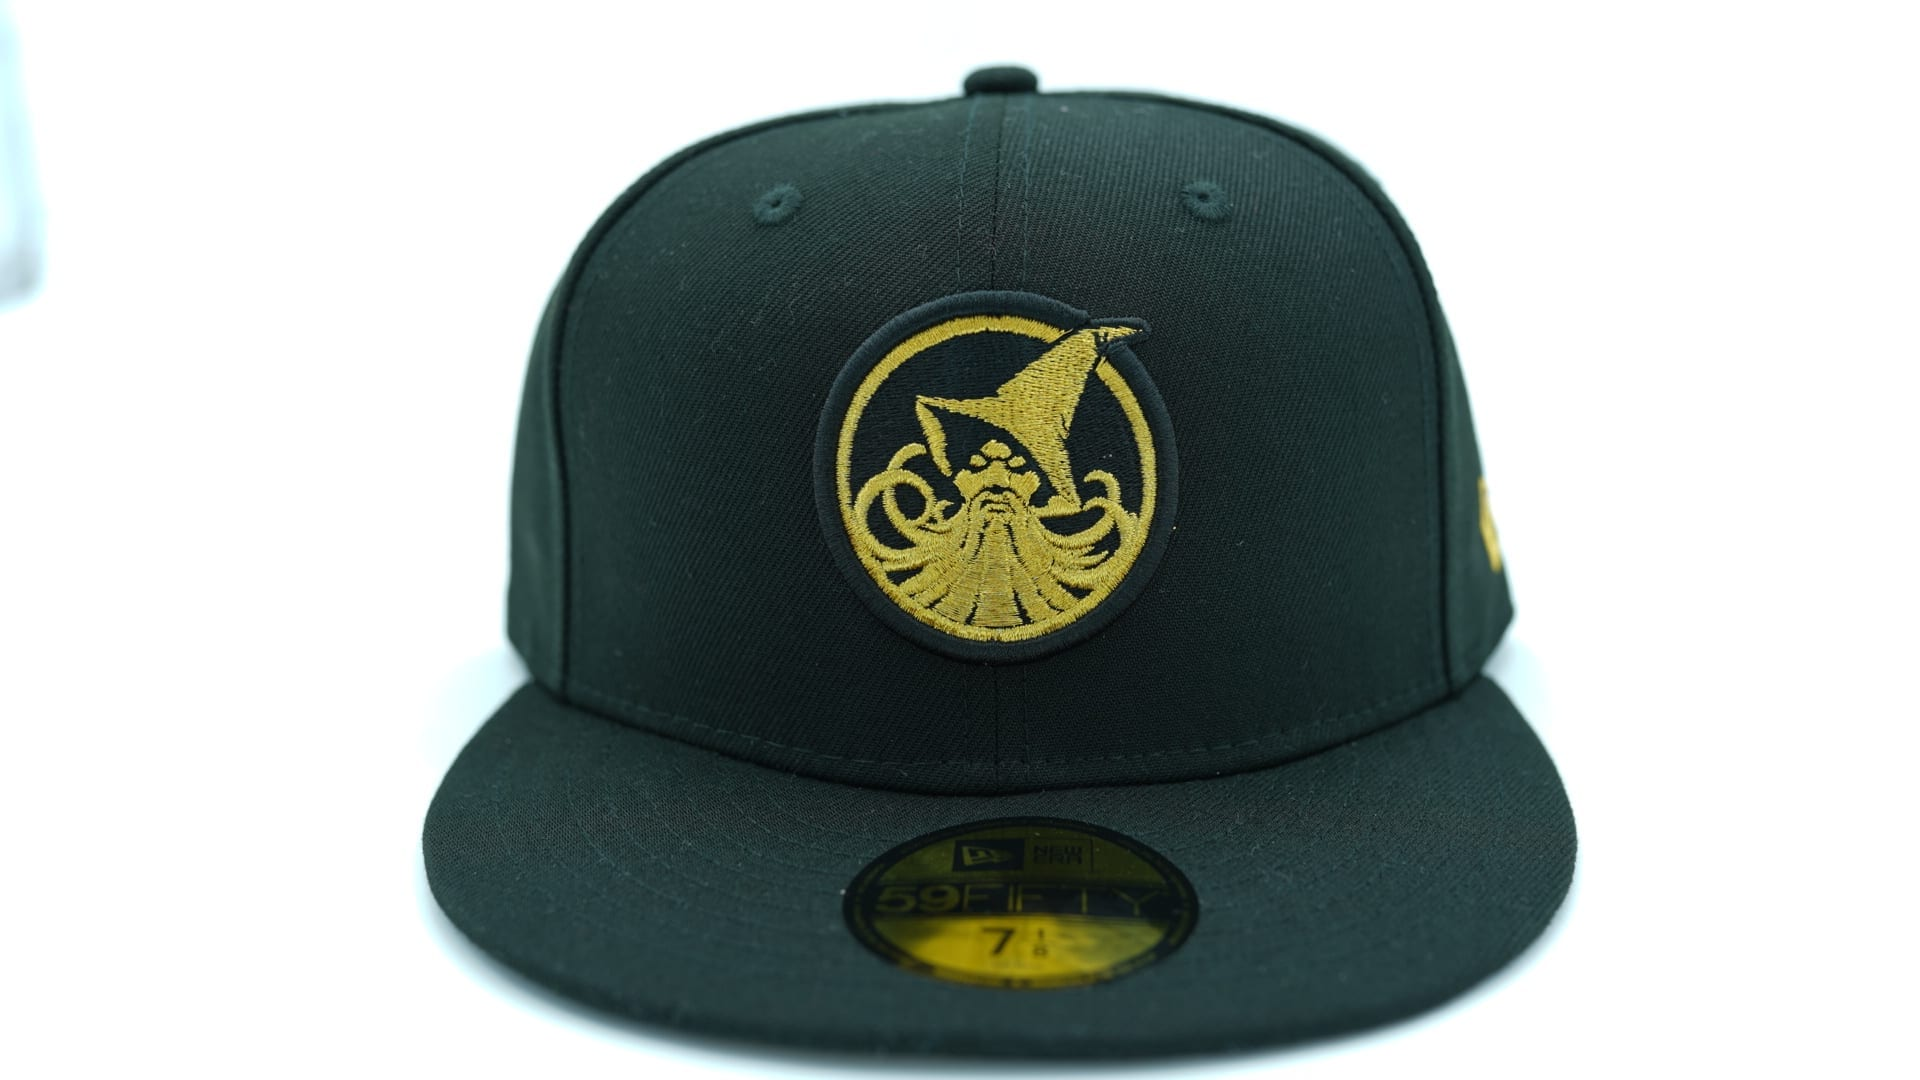 2b5daa14bbcd1 Israel Baseball WBC Qualifier 59Fifty Fitted Baseball Cap by NEW ERA x WBC